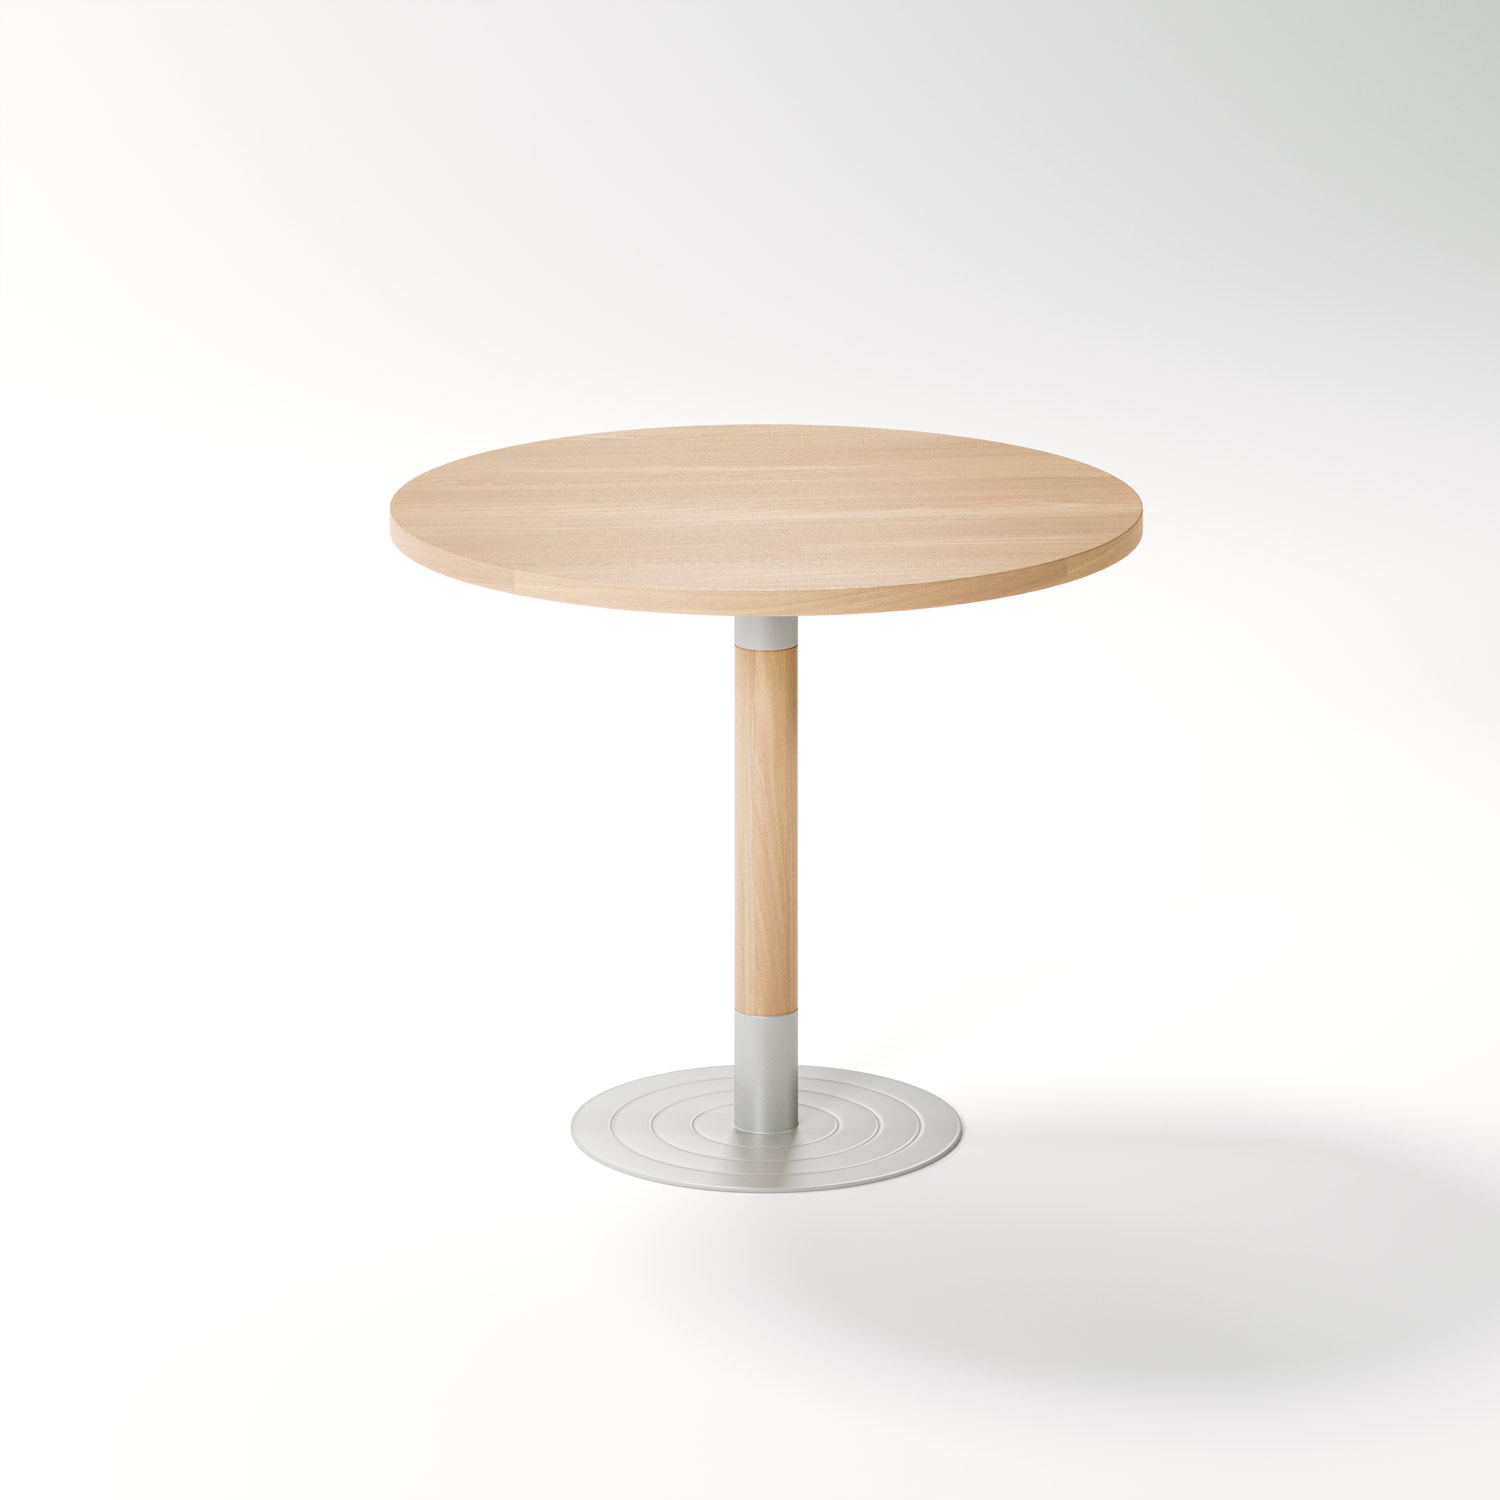 Aged Care Dining Stem Round Pedestal Table, side view